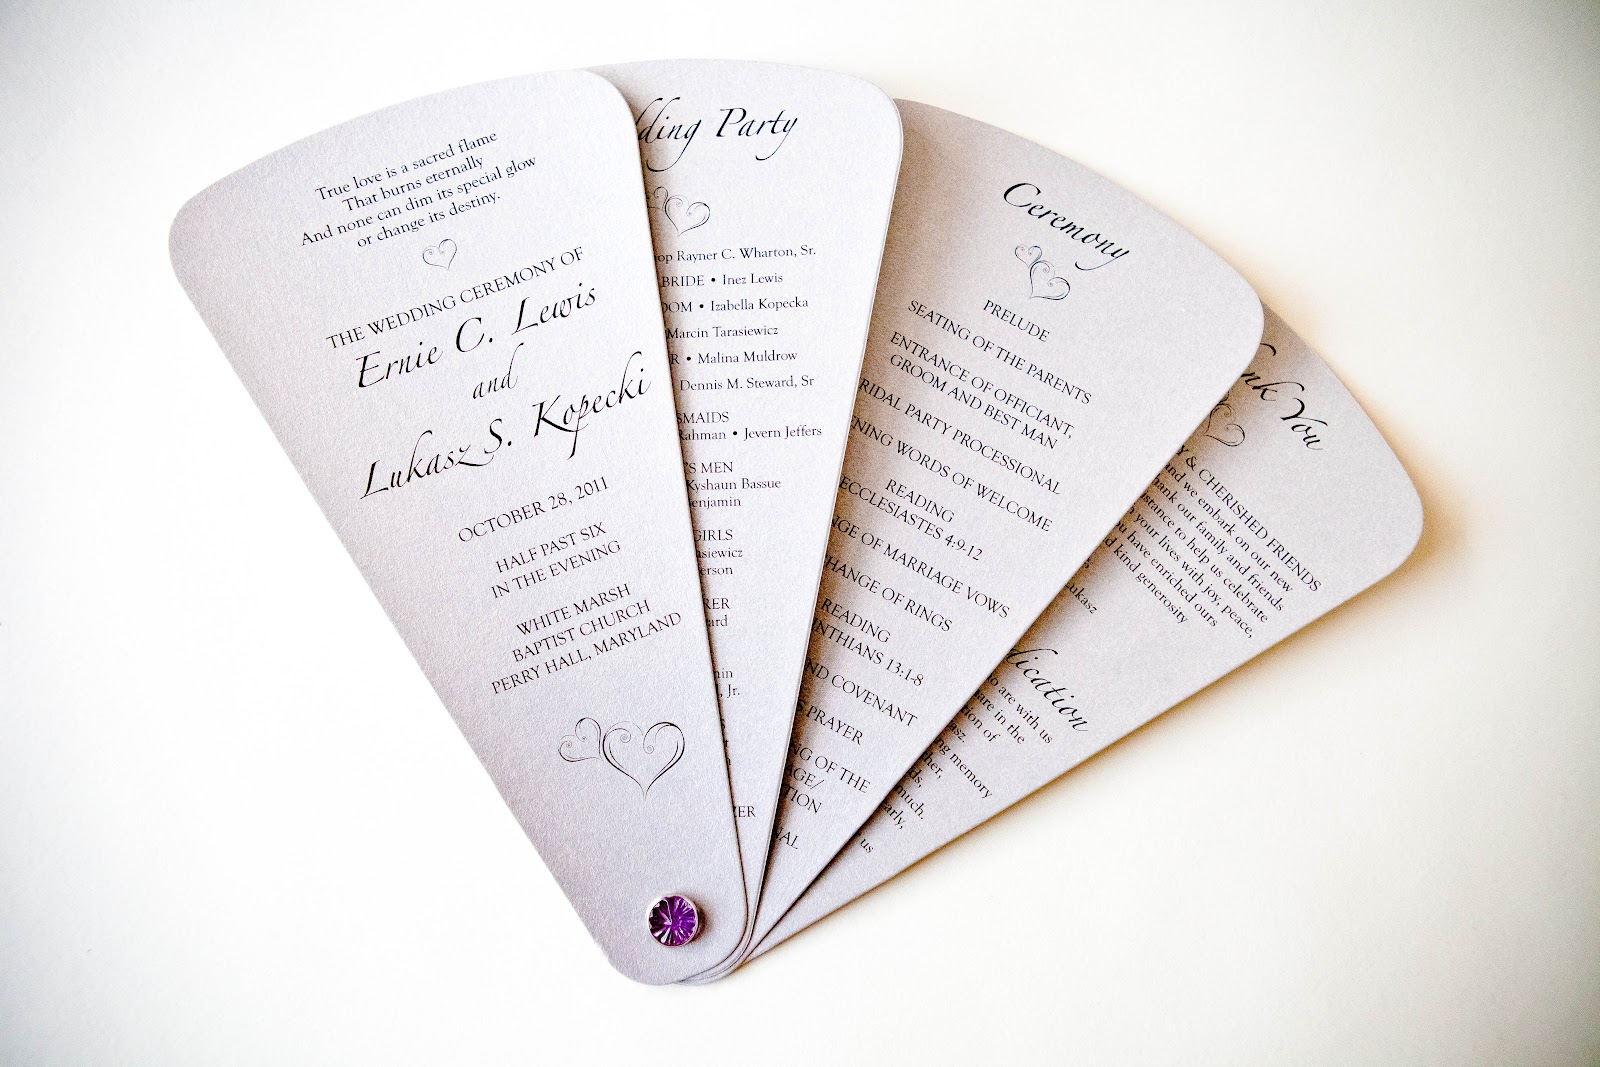 Unique Wedding Programs :: Invitations Baltimore Kindly RSVP Designs ...